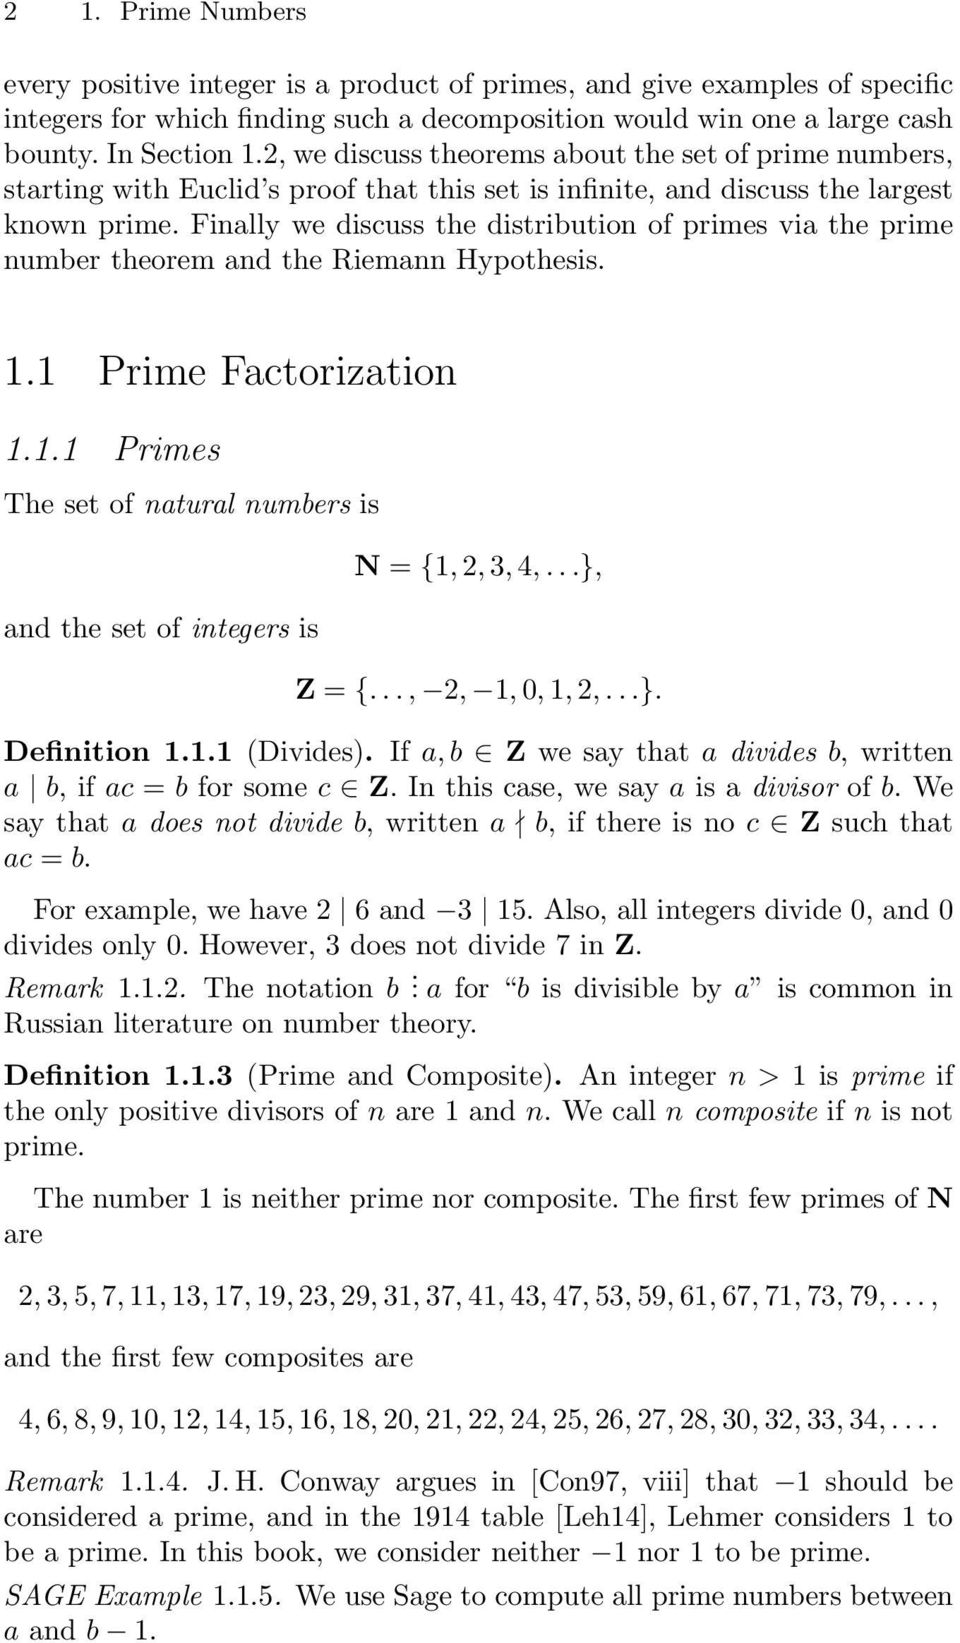 Finally we discuss the distribution of rimes via the rime number theorem and the Riemann Hyothesis. 1.1 Prime Factorization 1.1.1 Primes The set of natural numbers is and the set of integers is N = {1, 2, 3, 4,.